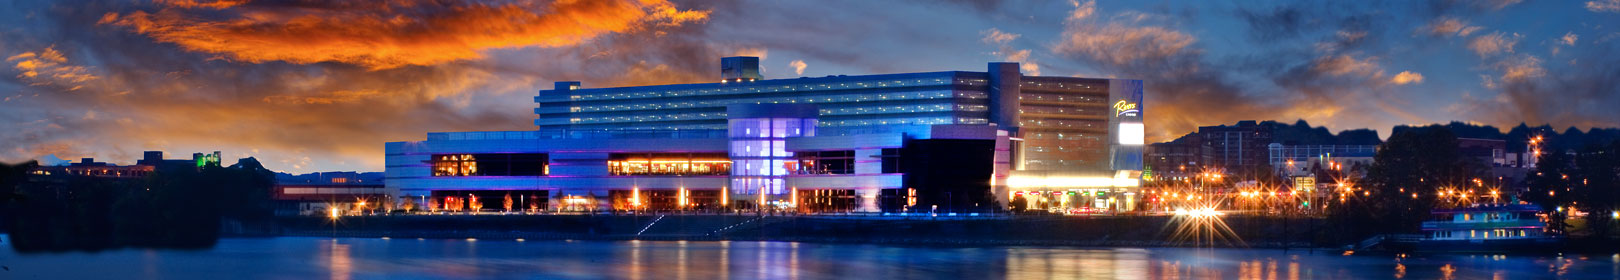 Lighthouse Electric | The Rivers Casino